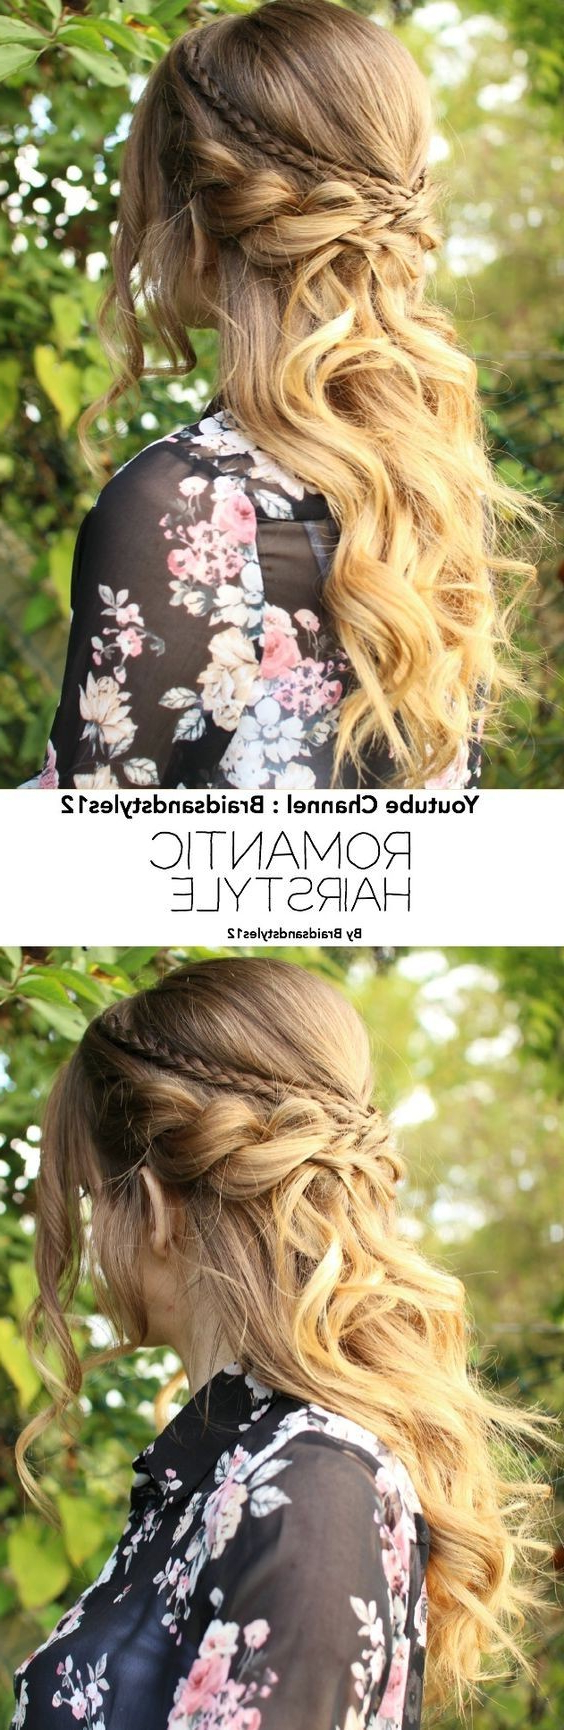 Latest Elegant Curled Prom Hairstyles In 18 Elegant Hairstyles For Prom 2019 (Gallery 17 of 20)